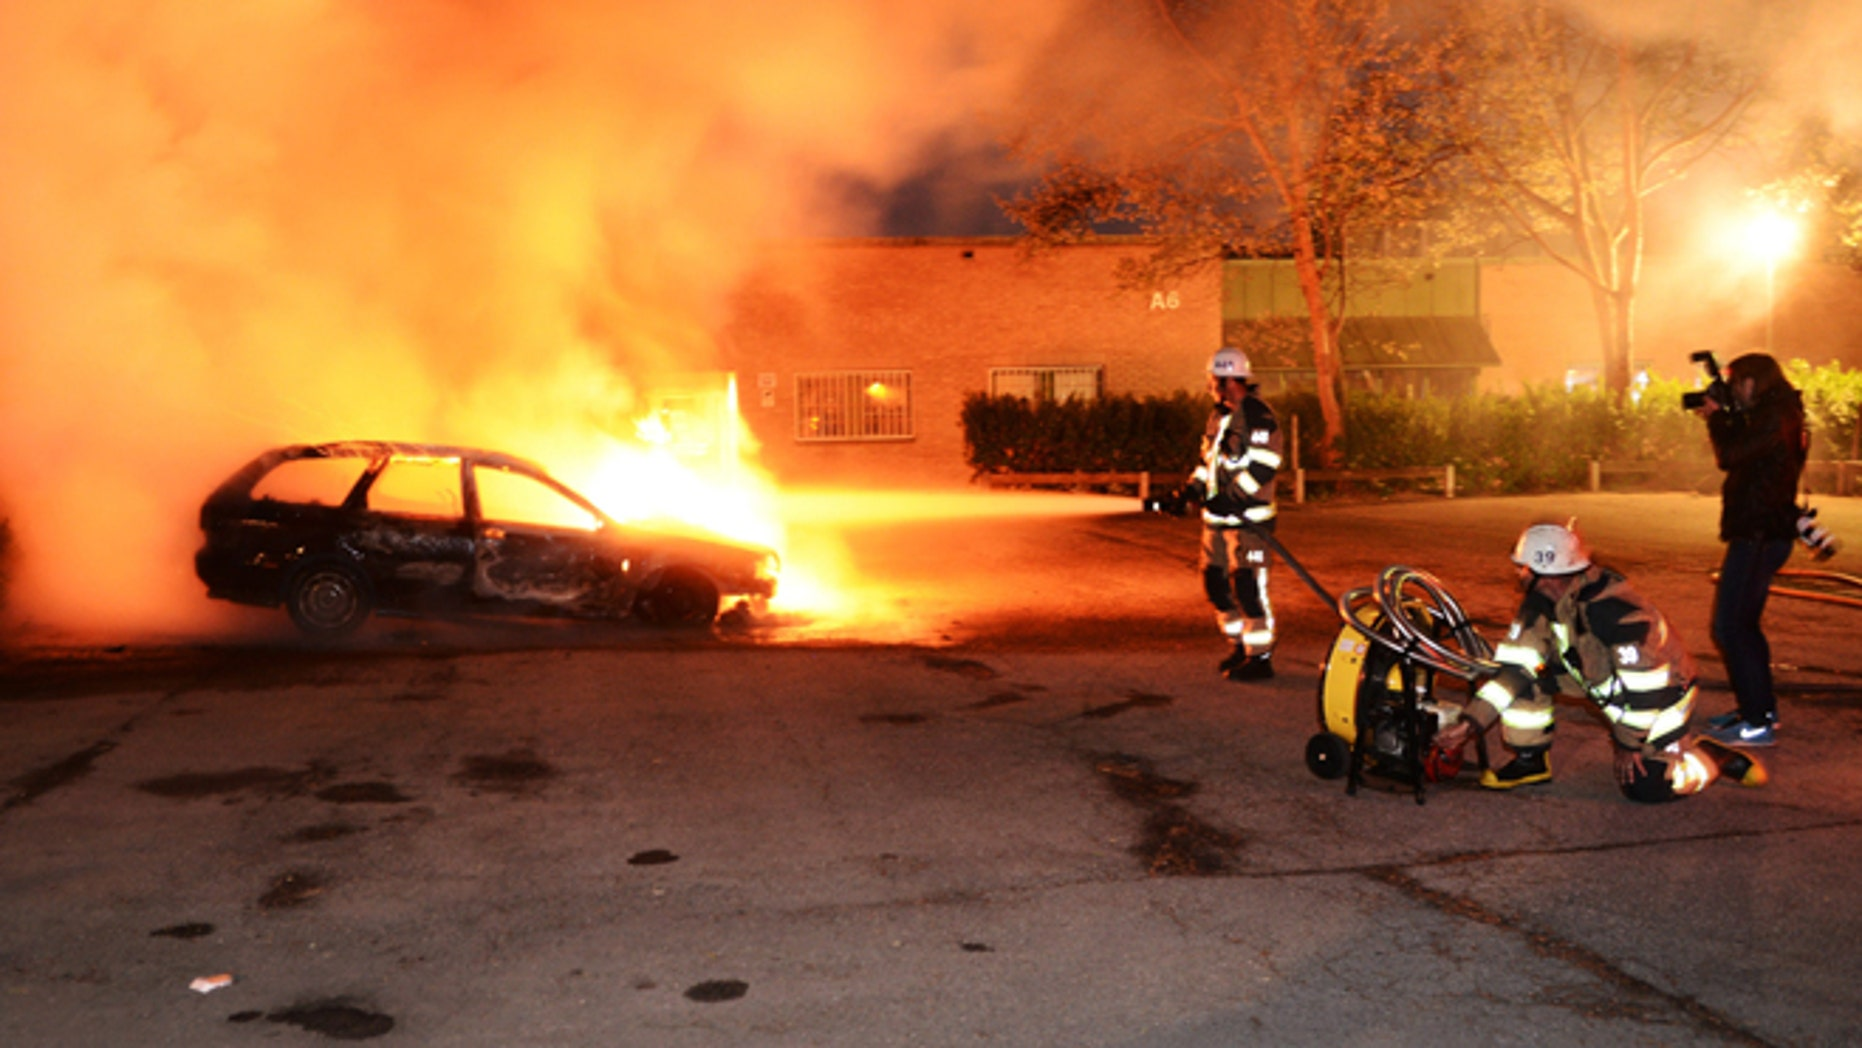 May 21, 2013: Firemen extinguish a burning car in the Stockholm suburb of Kista after youths rioted in several different suburbs around Stockholm for a third consecutive night.